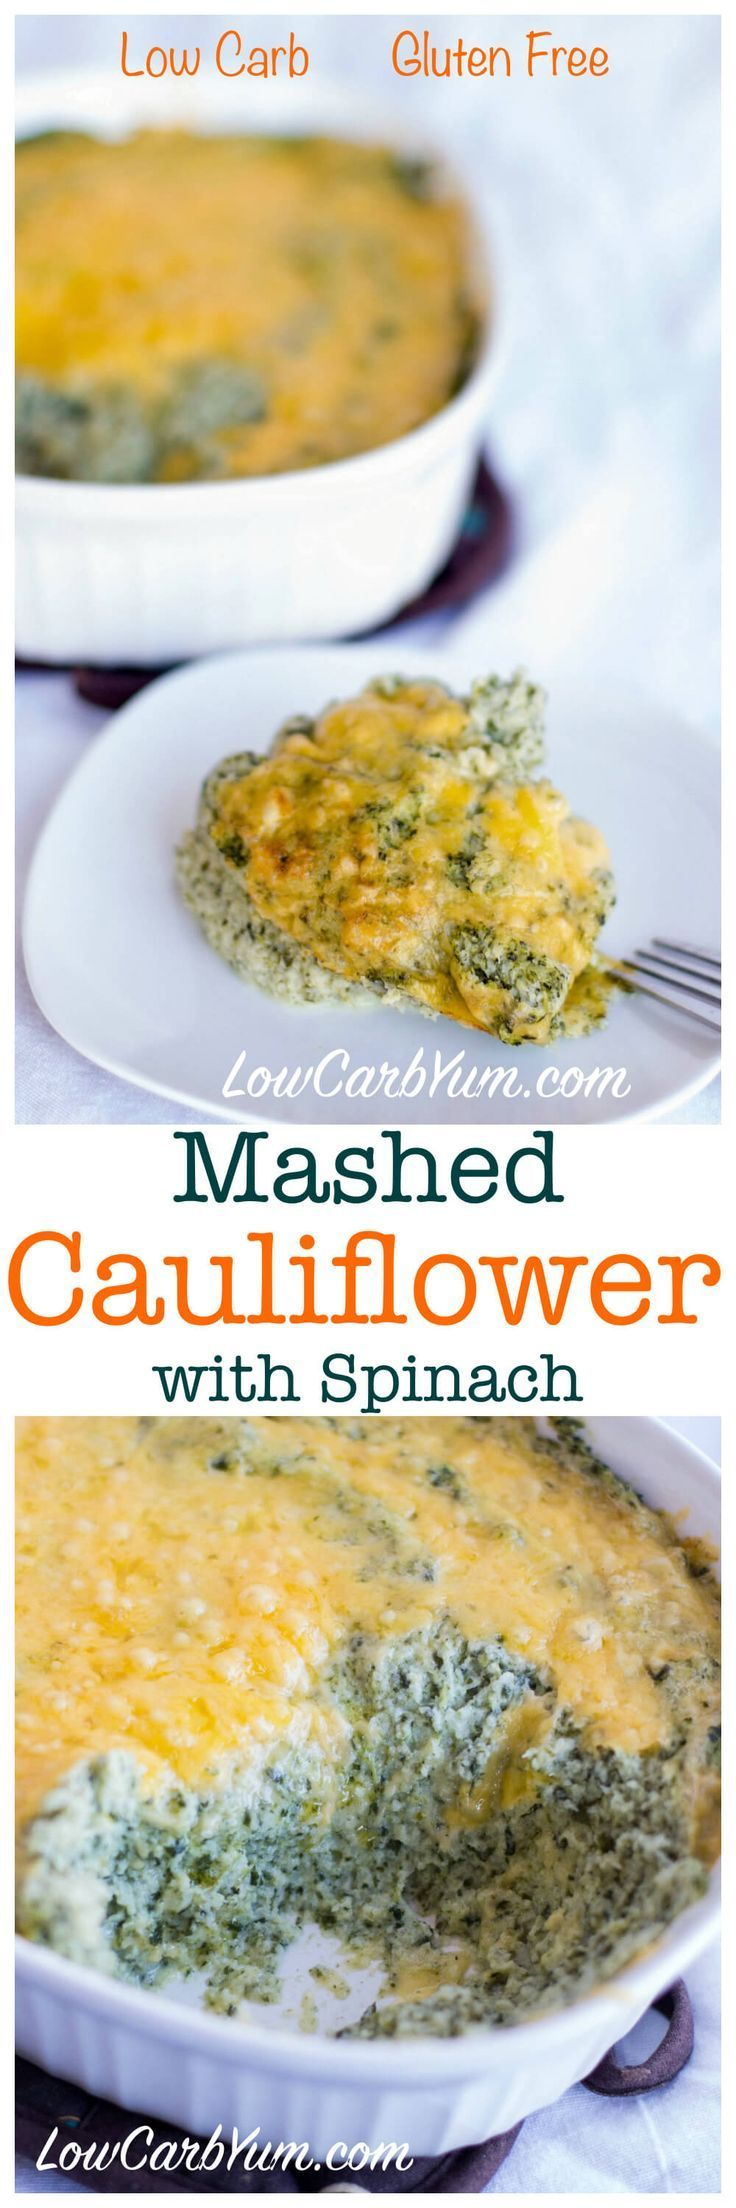 Low carb mashed cauliflower with spinach. Flavored with sour cream and cheese. LCHF Keto Atkins THM Banting